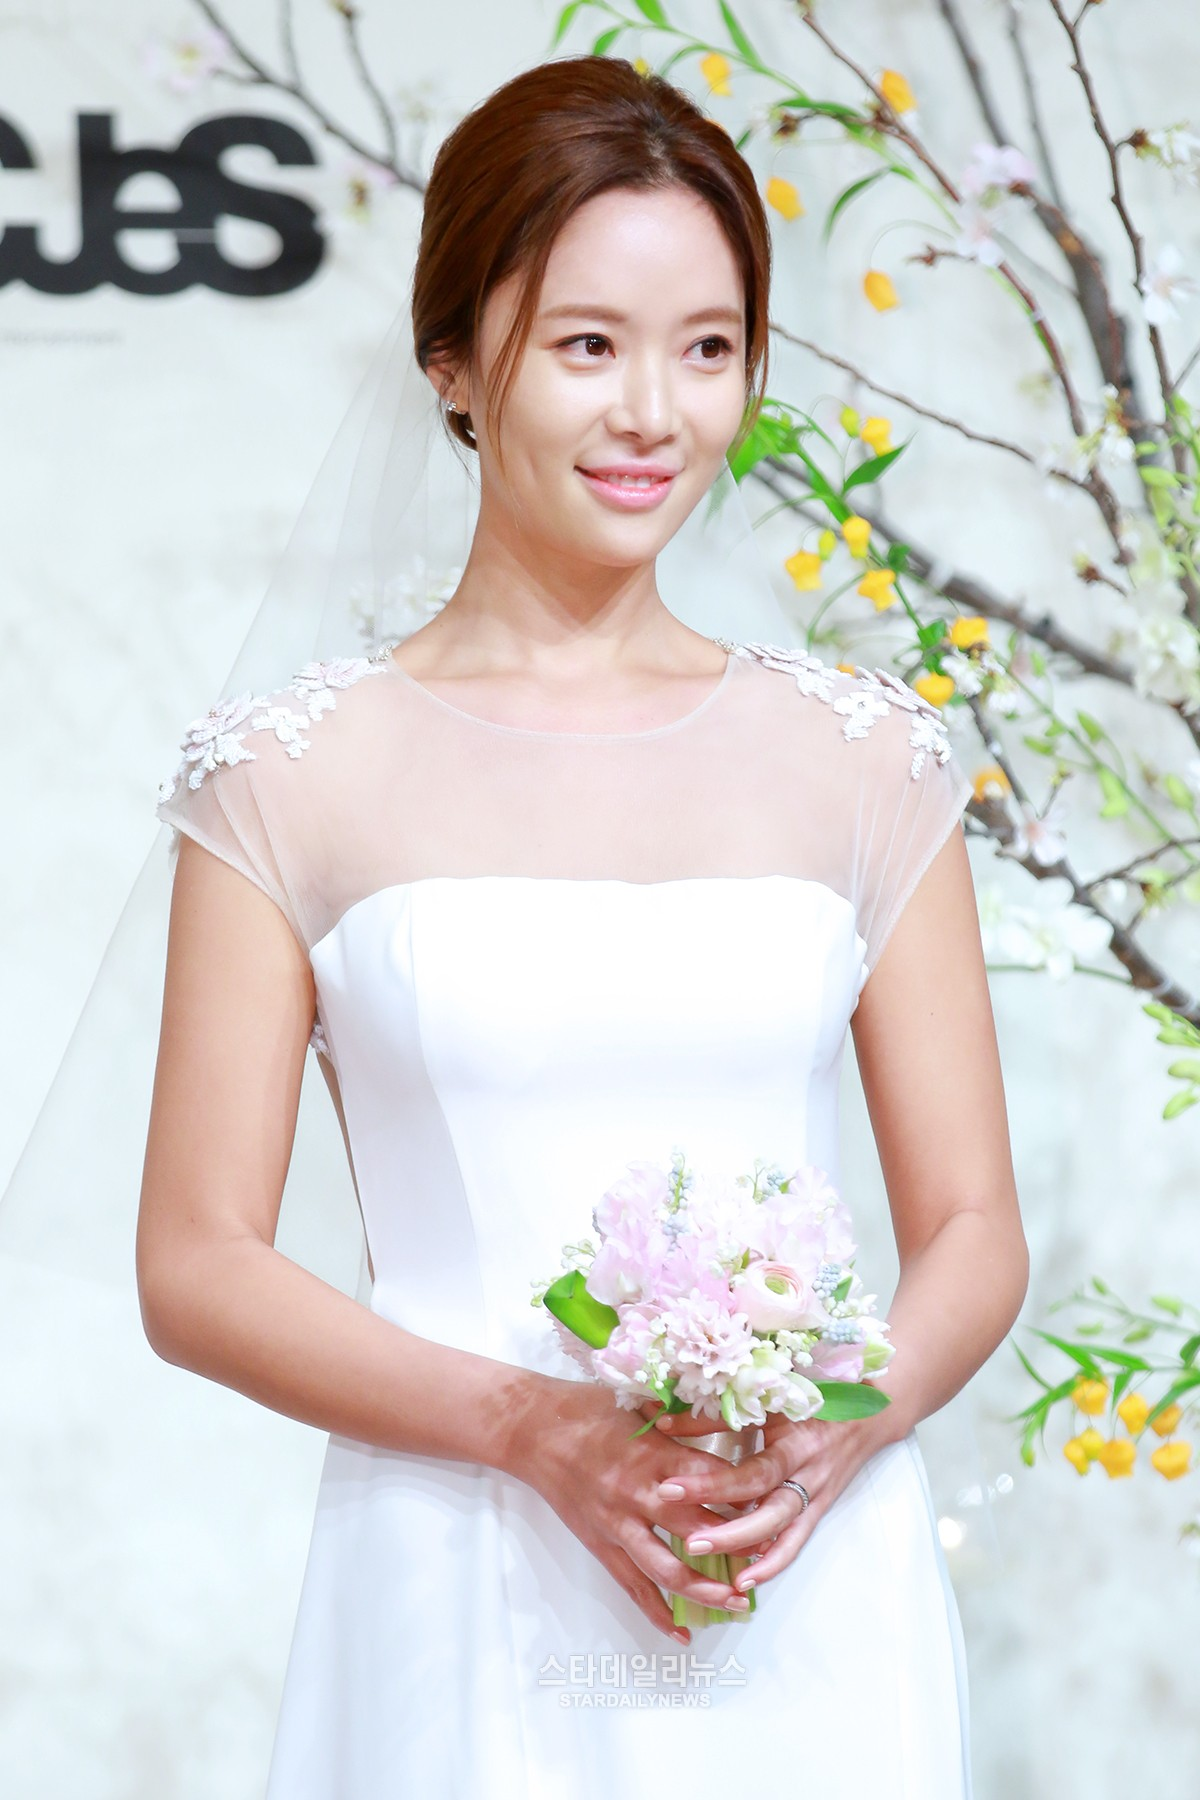 Hwang Jung Eum Ties the Knot With Pro-Golfer Fiancée | Soompi